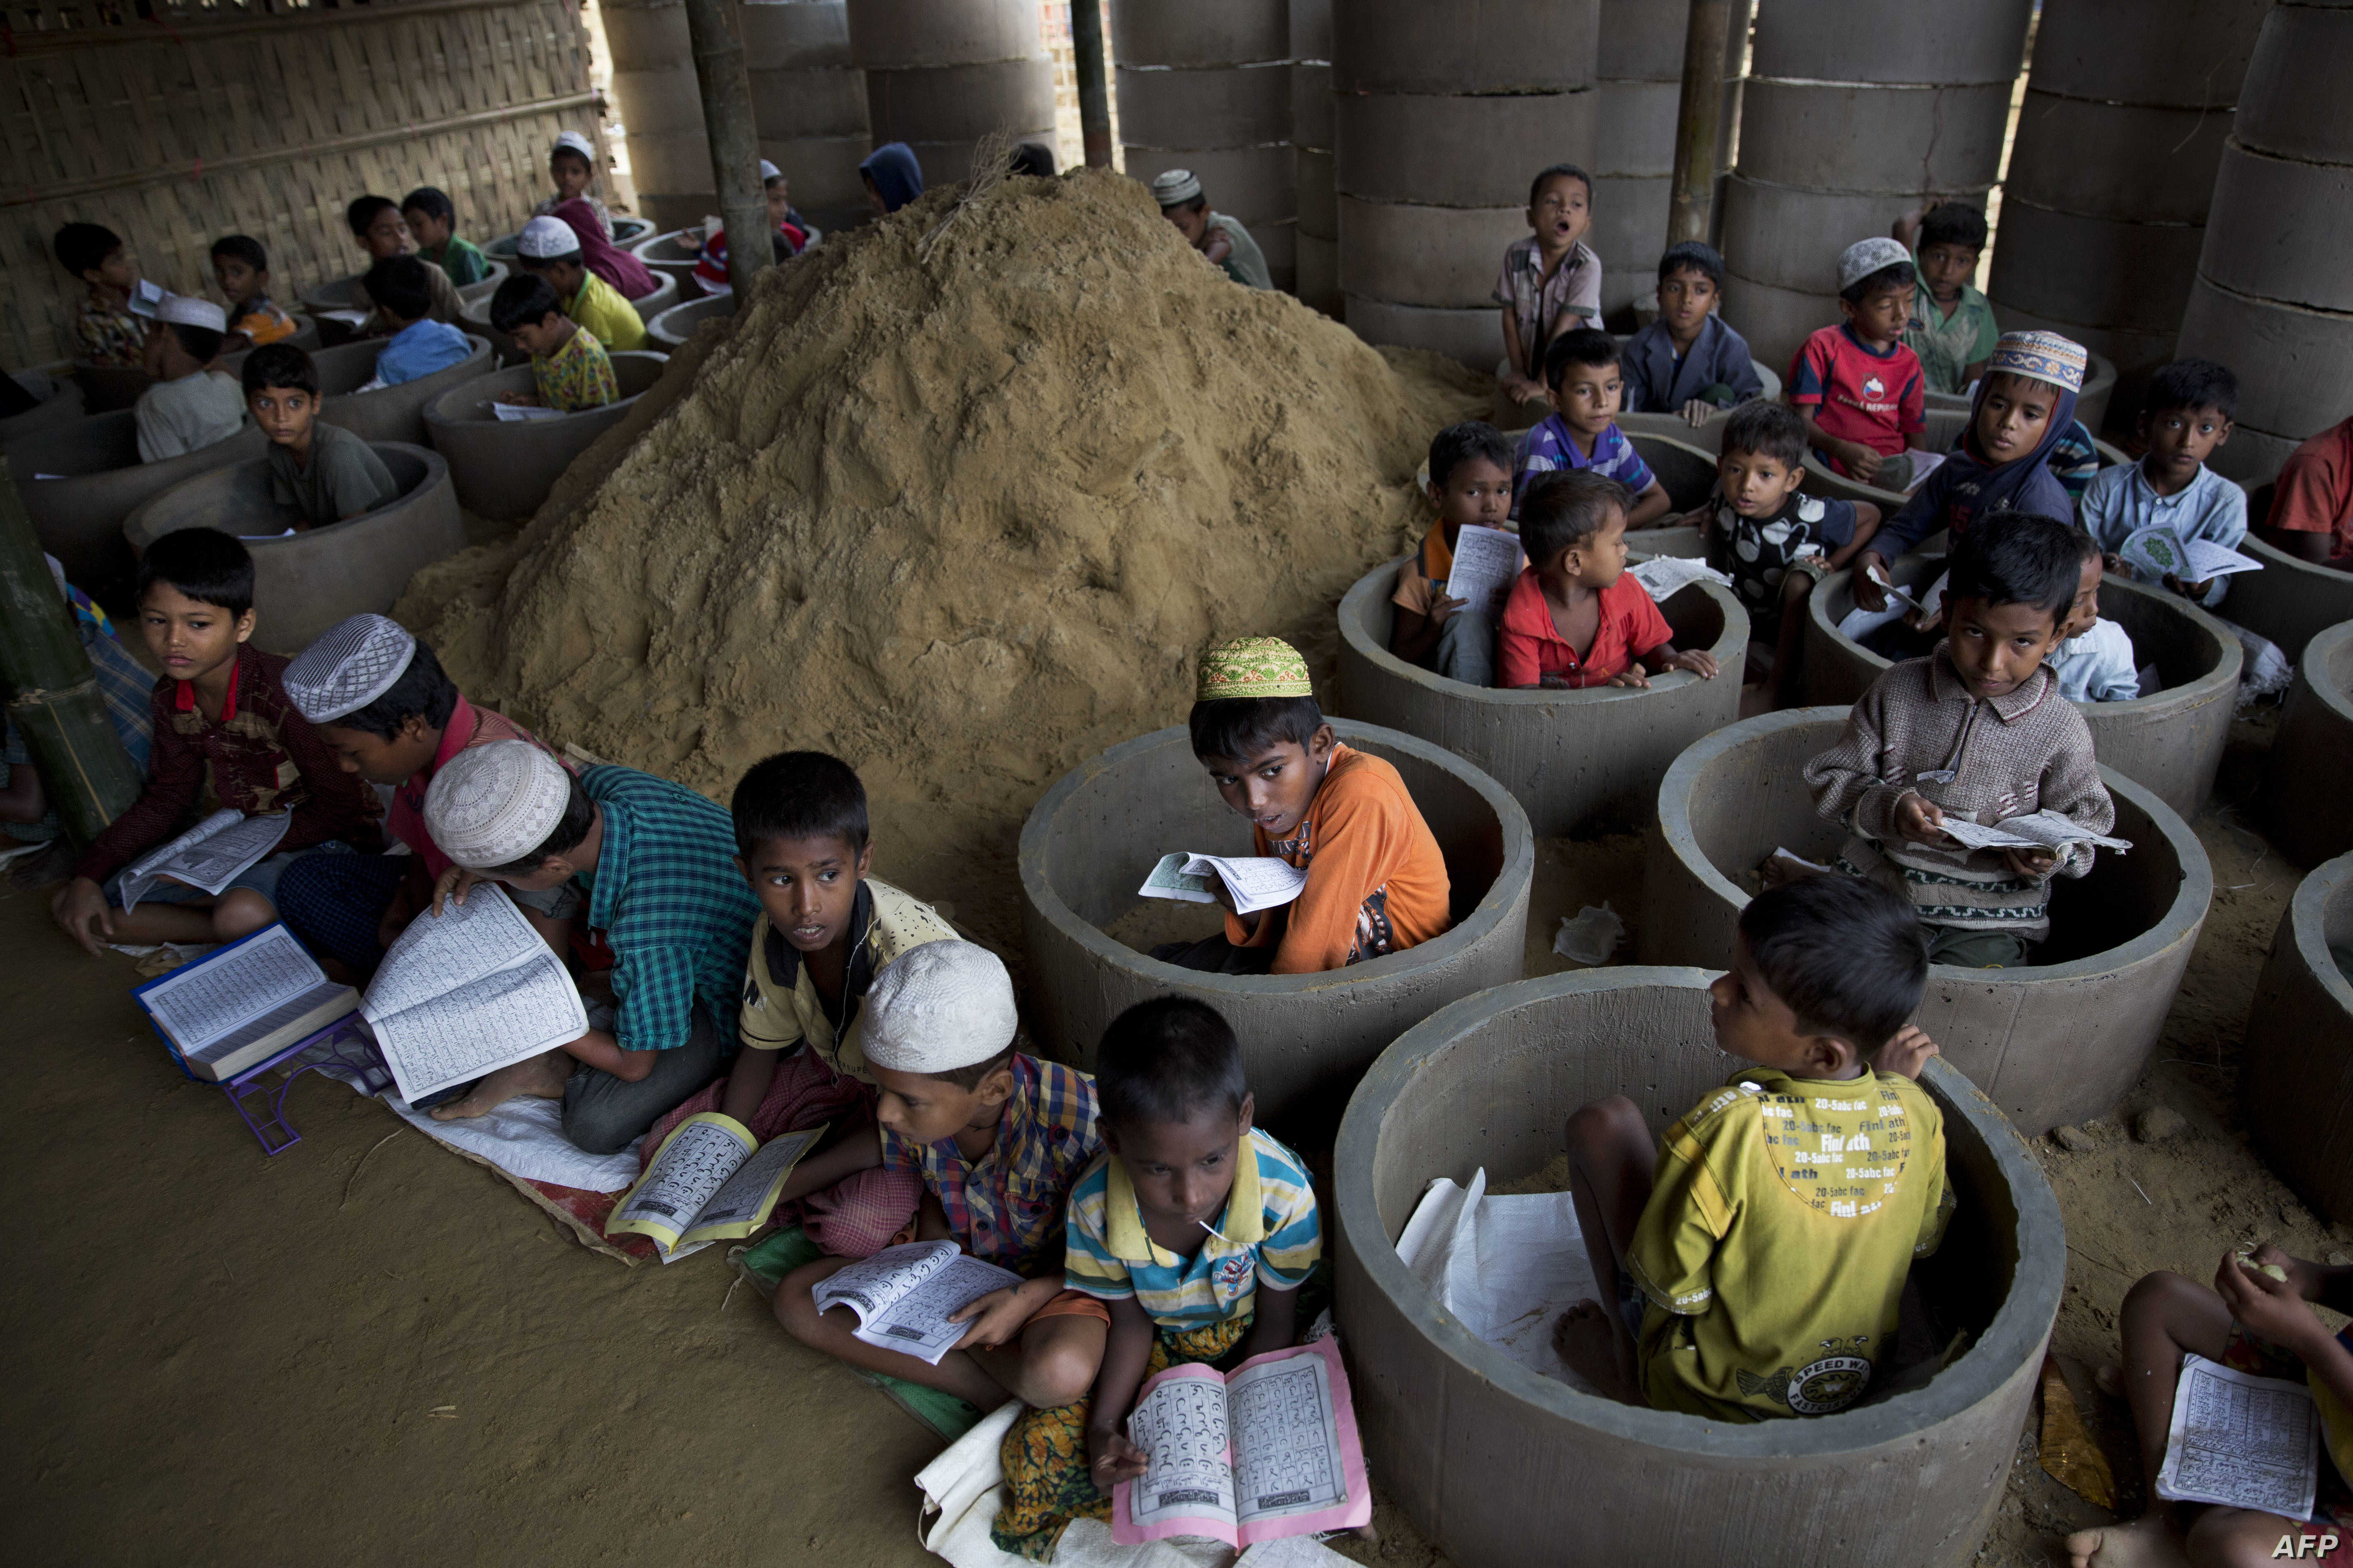 Rohingya refugee children attend recitation classes of the holy Quran in a newly opened madrasa, or religious school, amid material stocked for constructing latrines in Balukhali refugee camp, Bangladesh, Monday, Oct. 30, 2017.